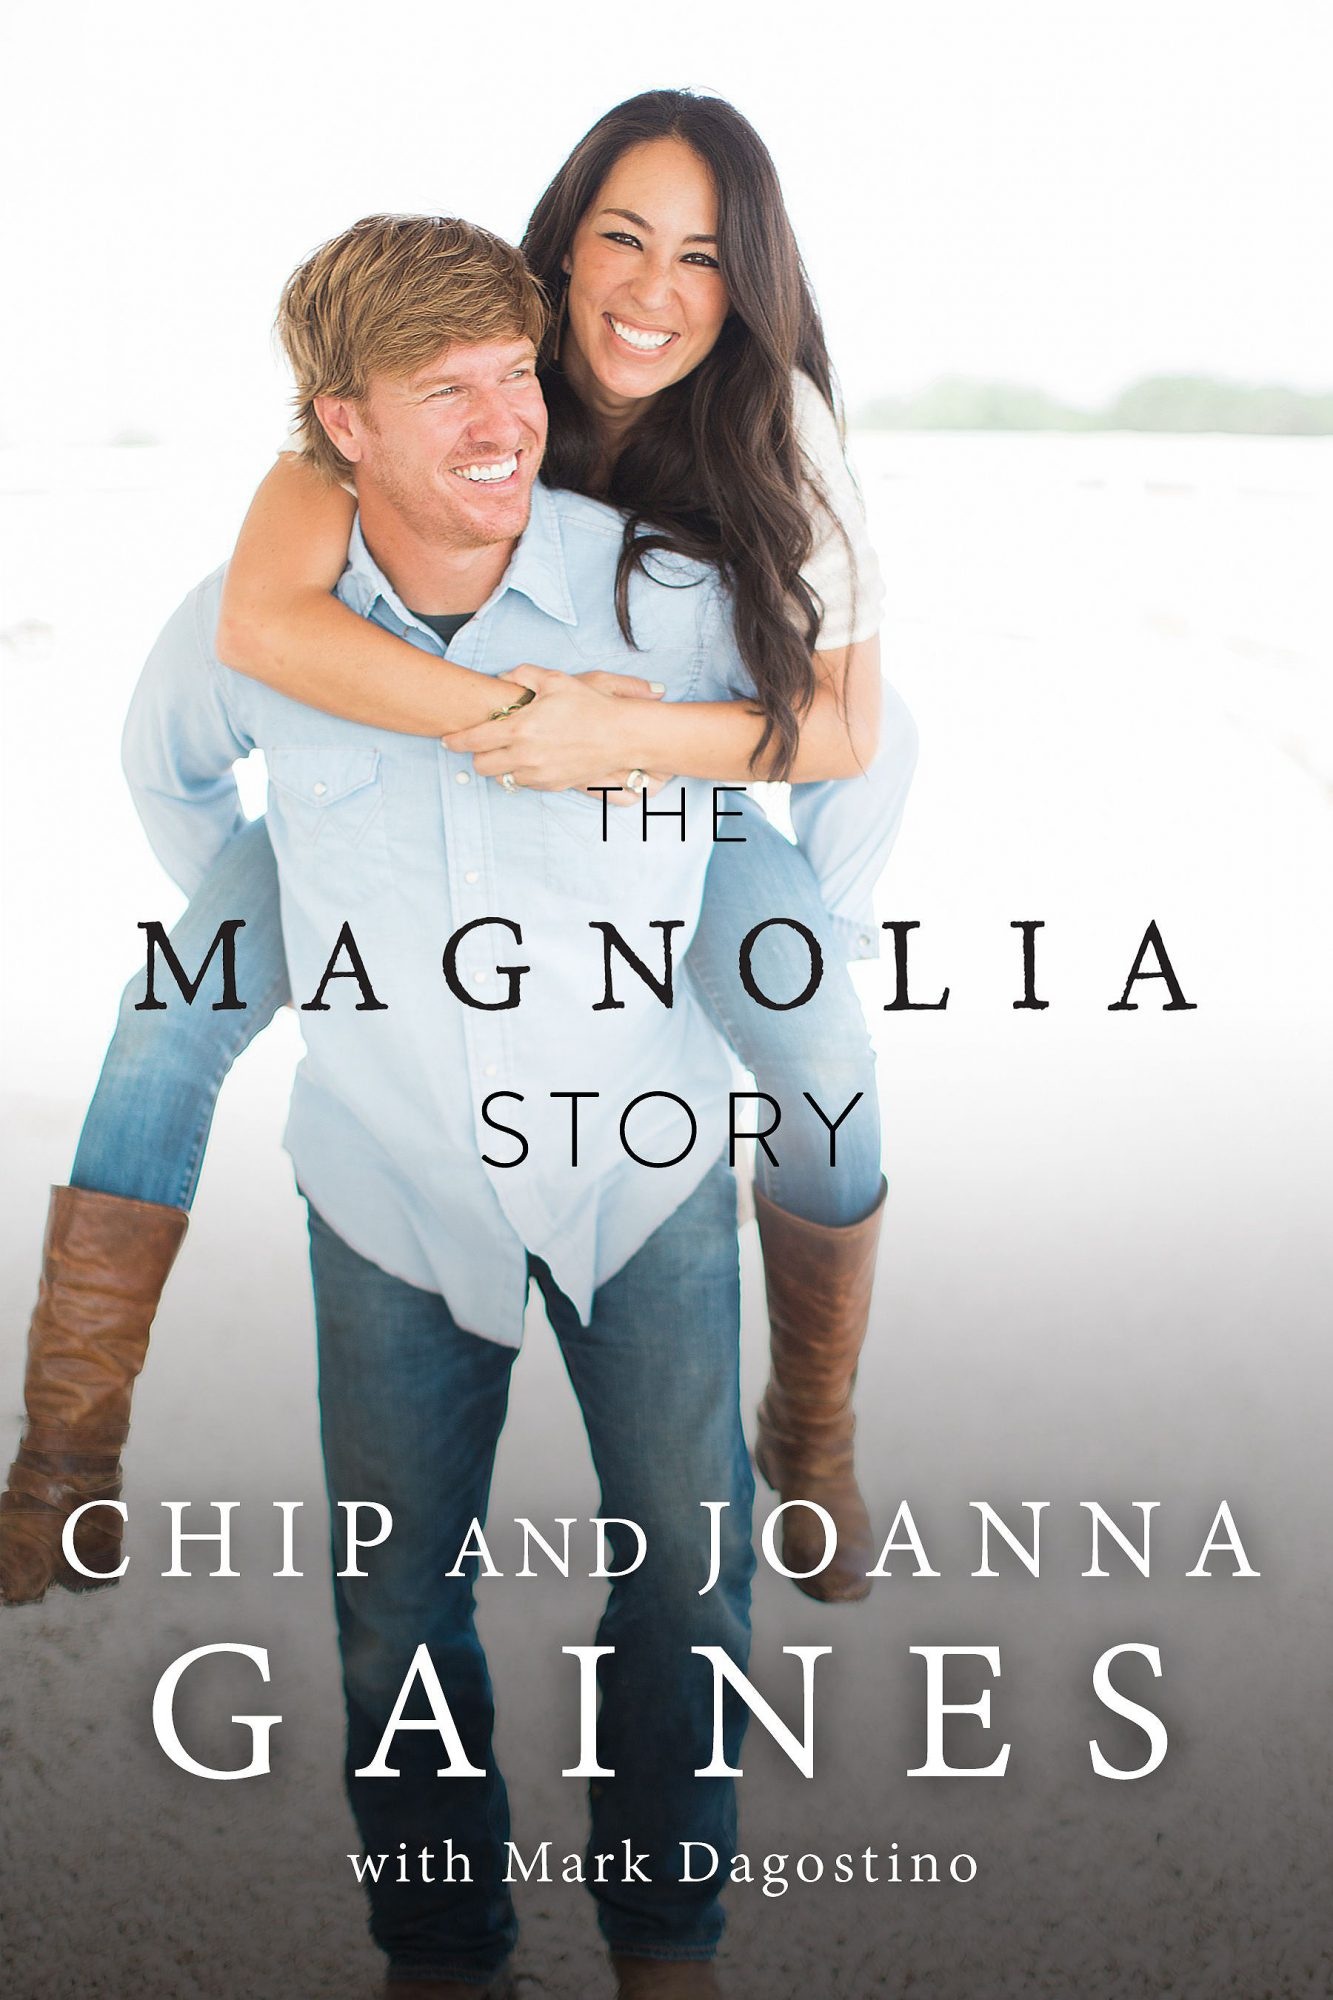 chip joanna gaines the magnolia story book